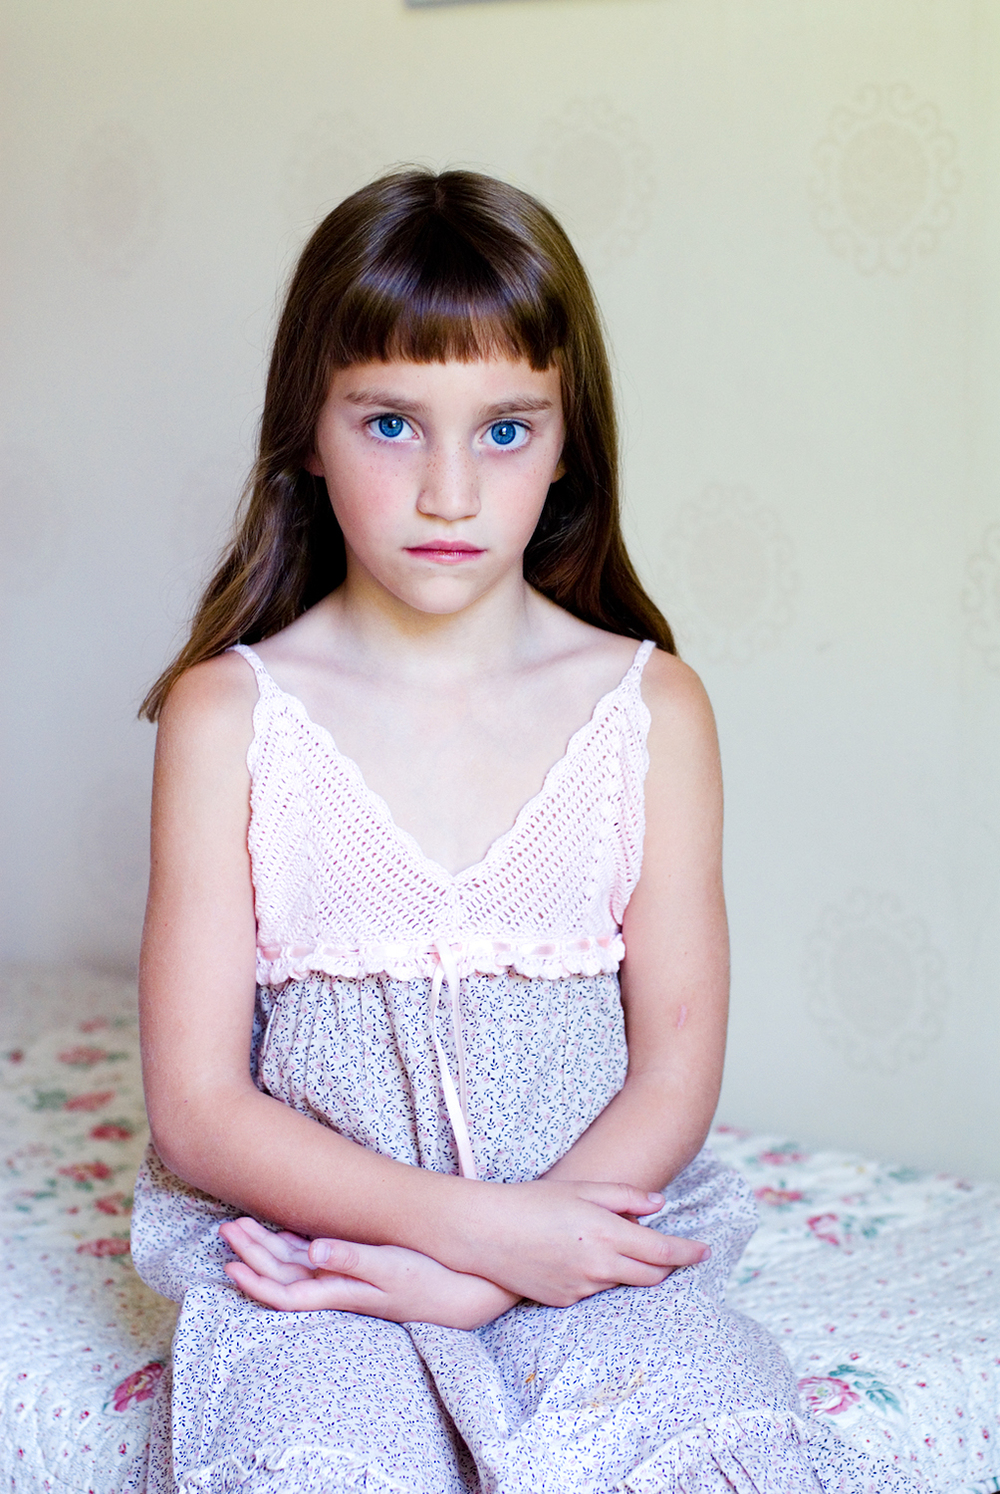 Allegra - featured in the Taylor Wessing Portrait Prize